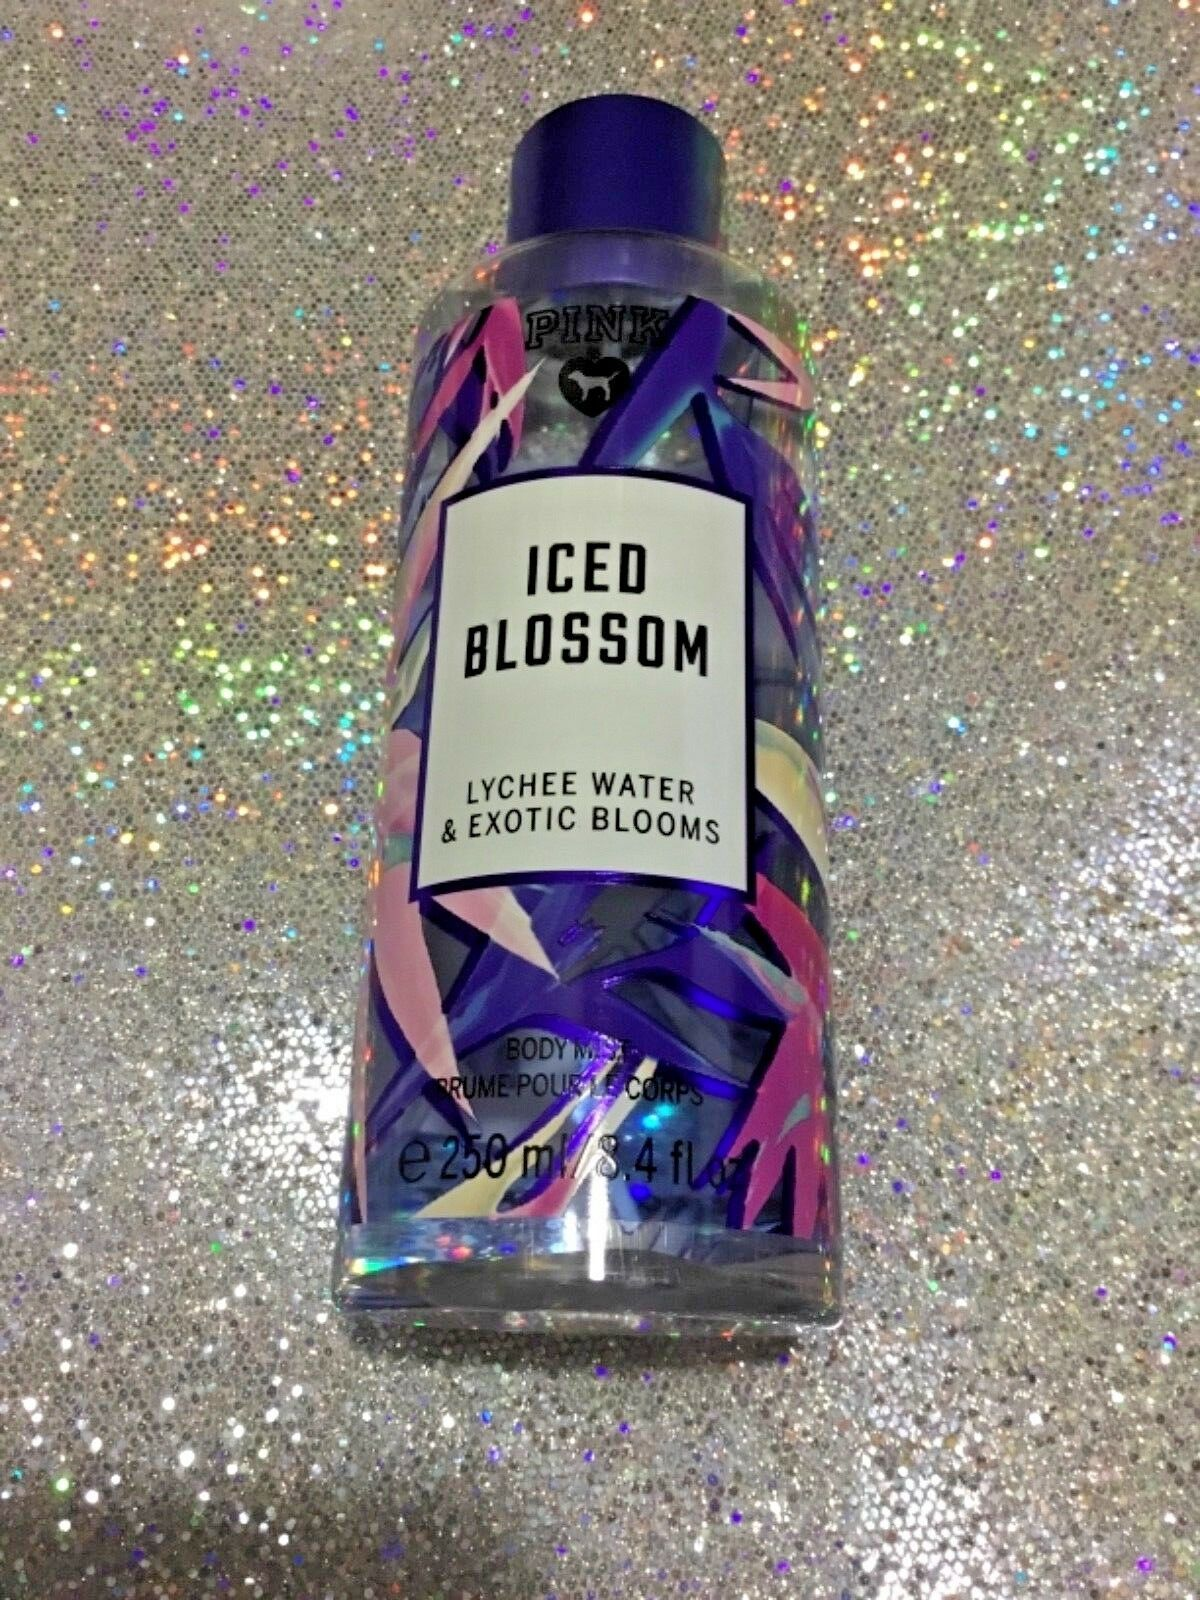 Primary image for Victoria's Secret PINK Iced Blossom Fragrance Body Mist 8.4 oz. NEW